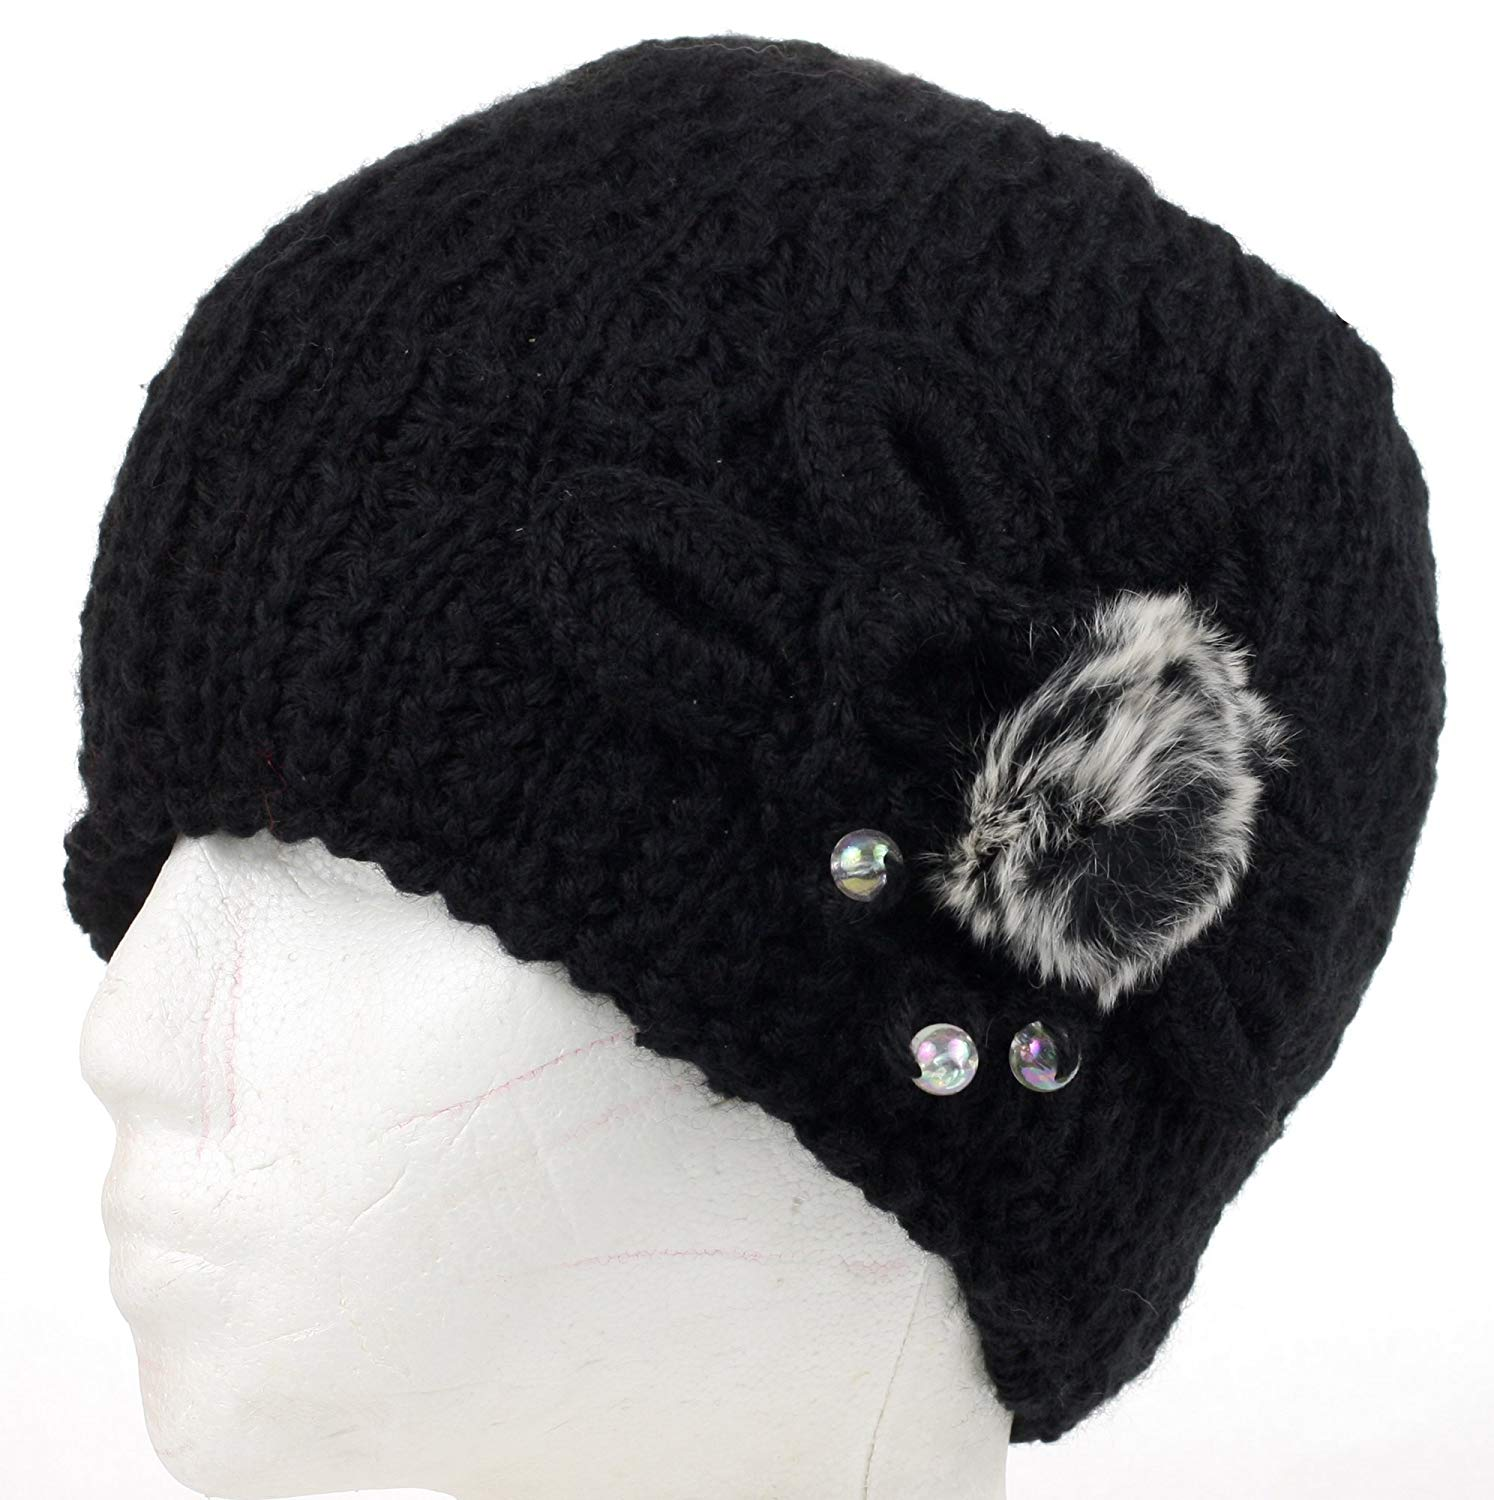 9c4f3ae78924d Get Quotations · DRY77 Elegant Knitted Flower and Fur Ball Winter Beanie  Crochet Hat